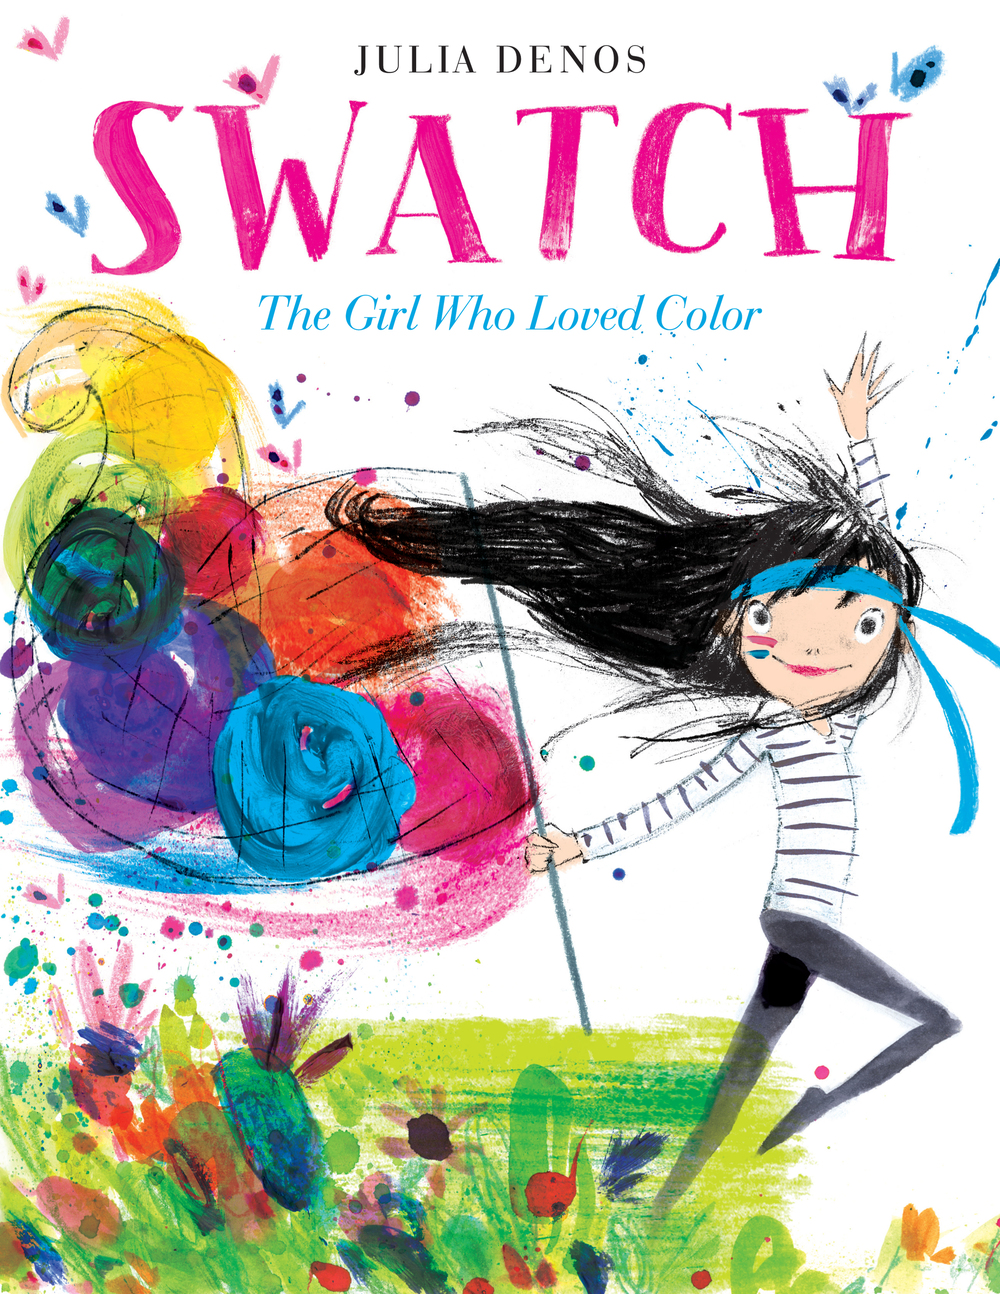 Swatch: The Girl Who Loved Color by Julia Denos, $17.99